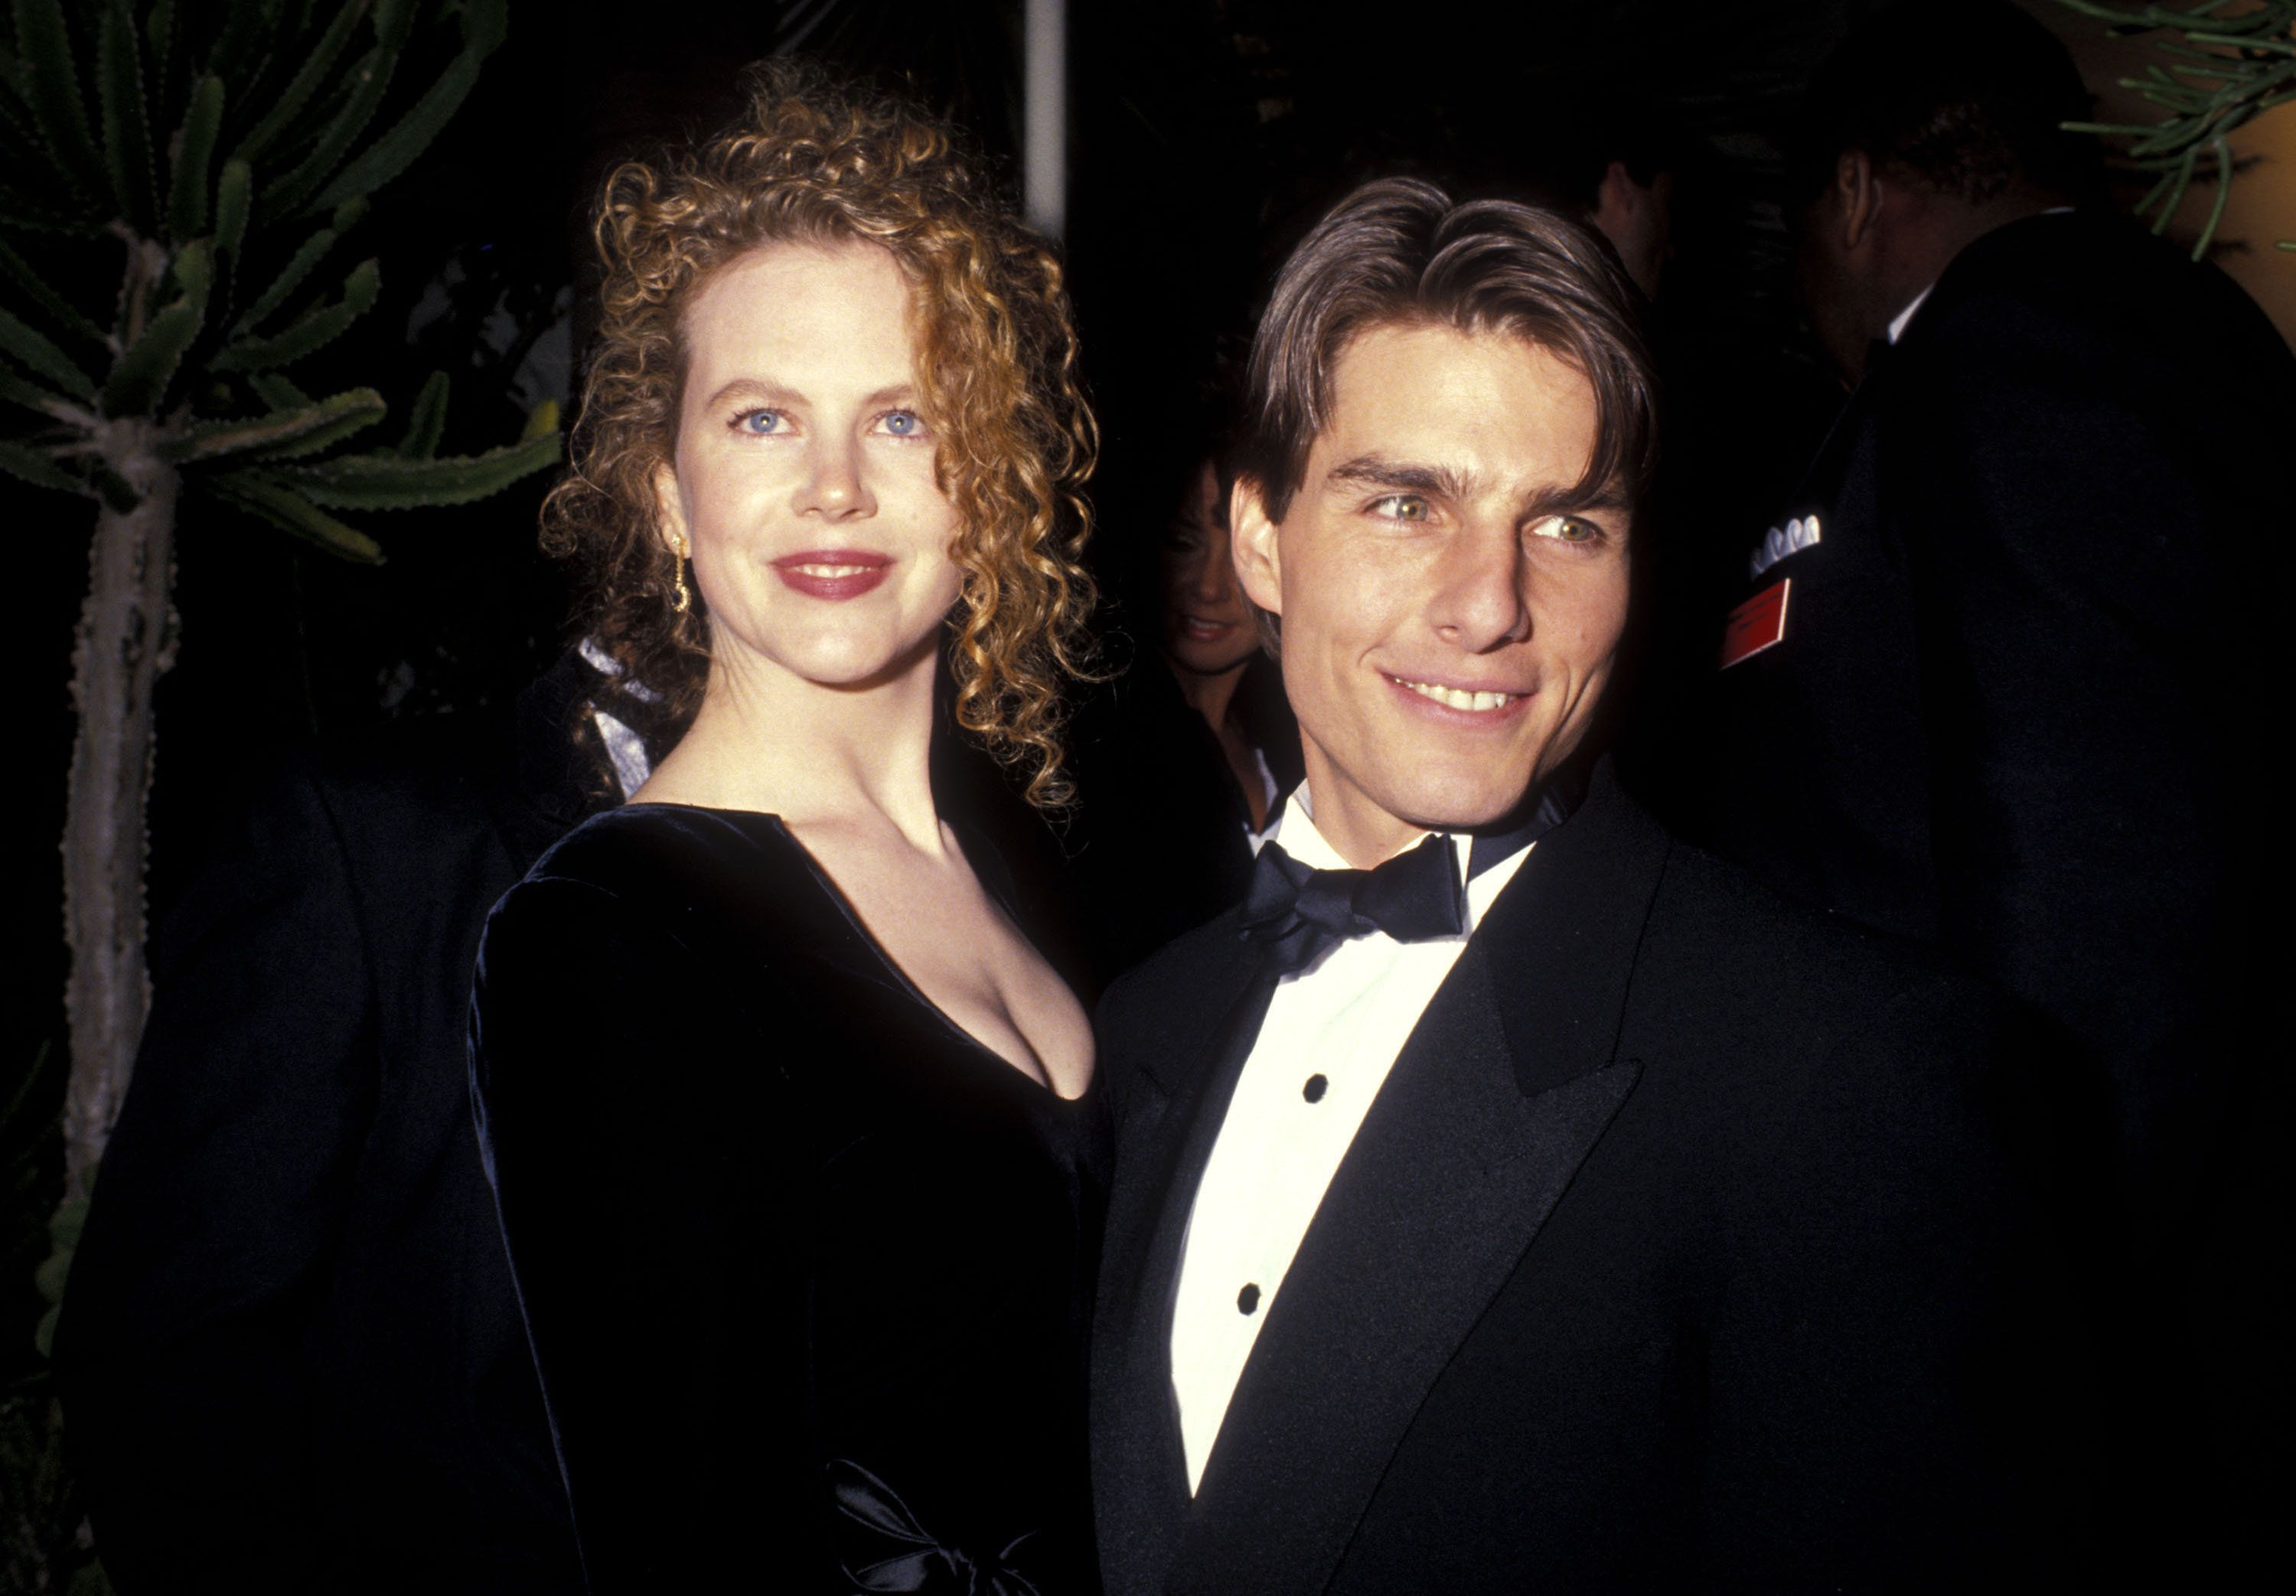 Nicole Kidman and Tom Cruise attend the 1991 Annual Academy Awards after party.